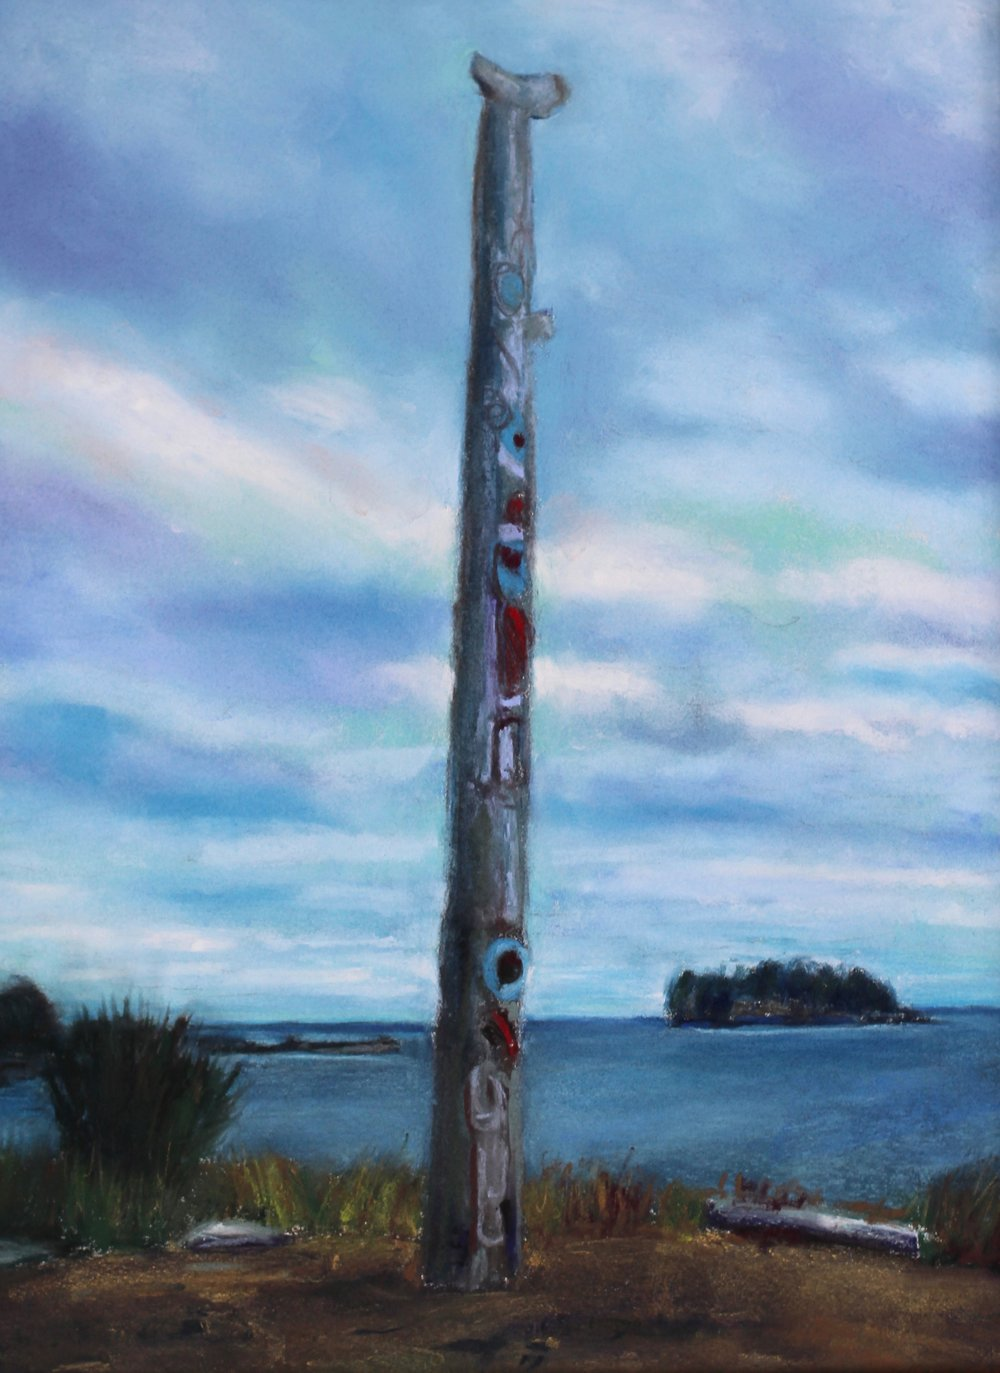 Pole at K'aay Llnagaay, Haida Gwaii